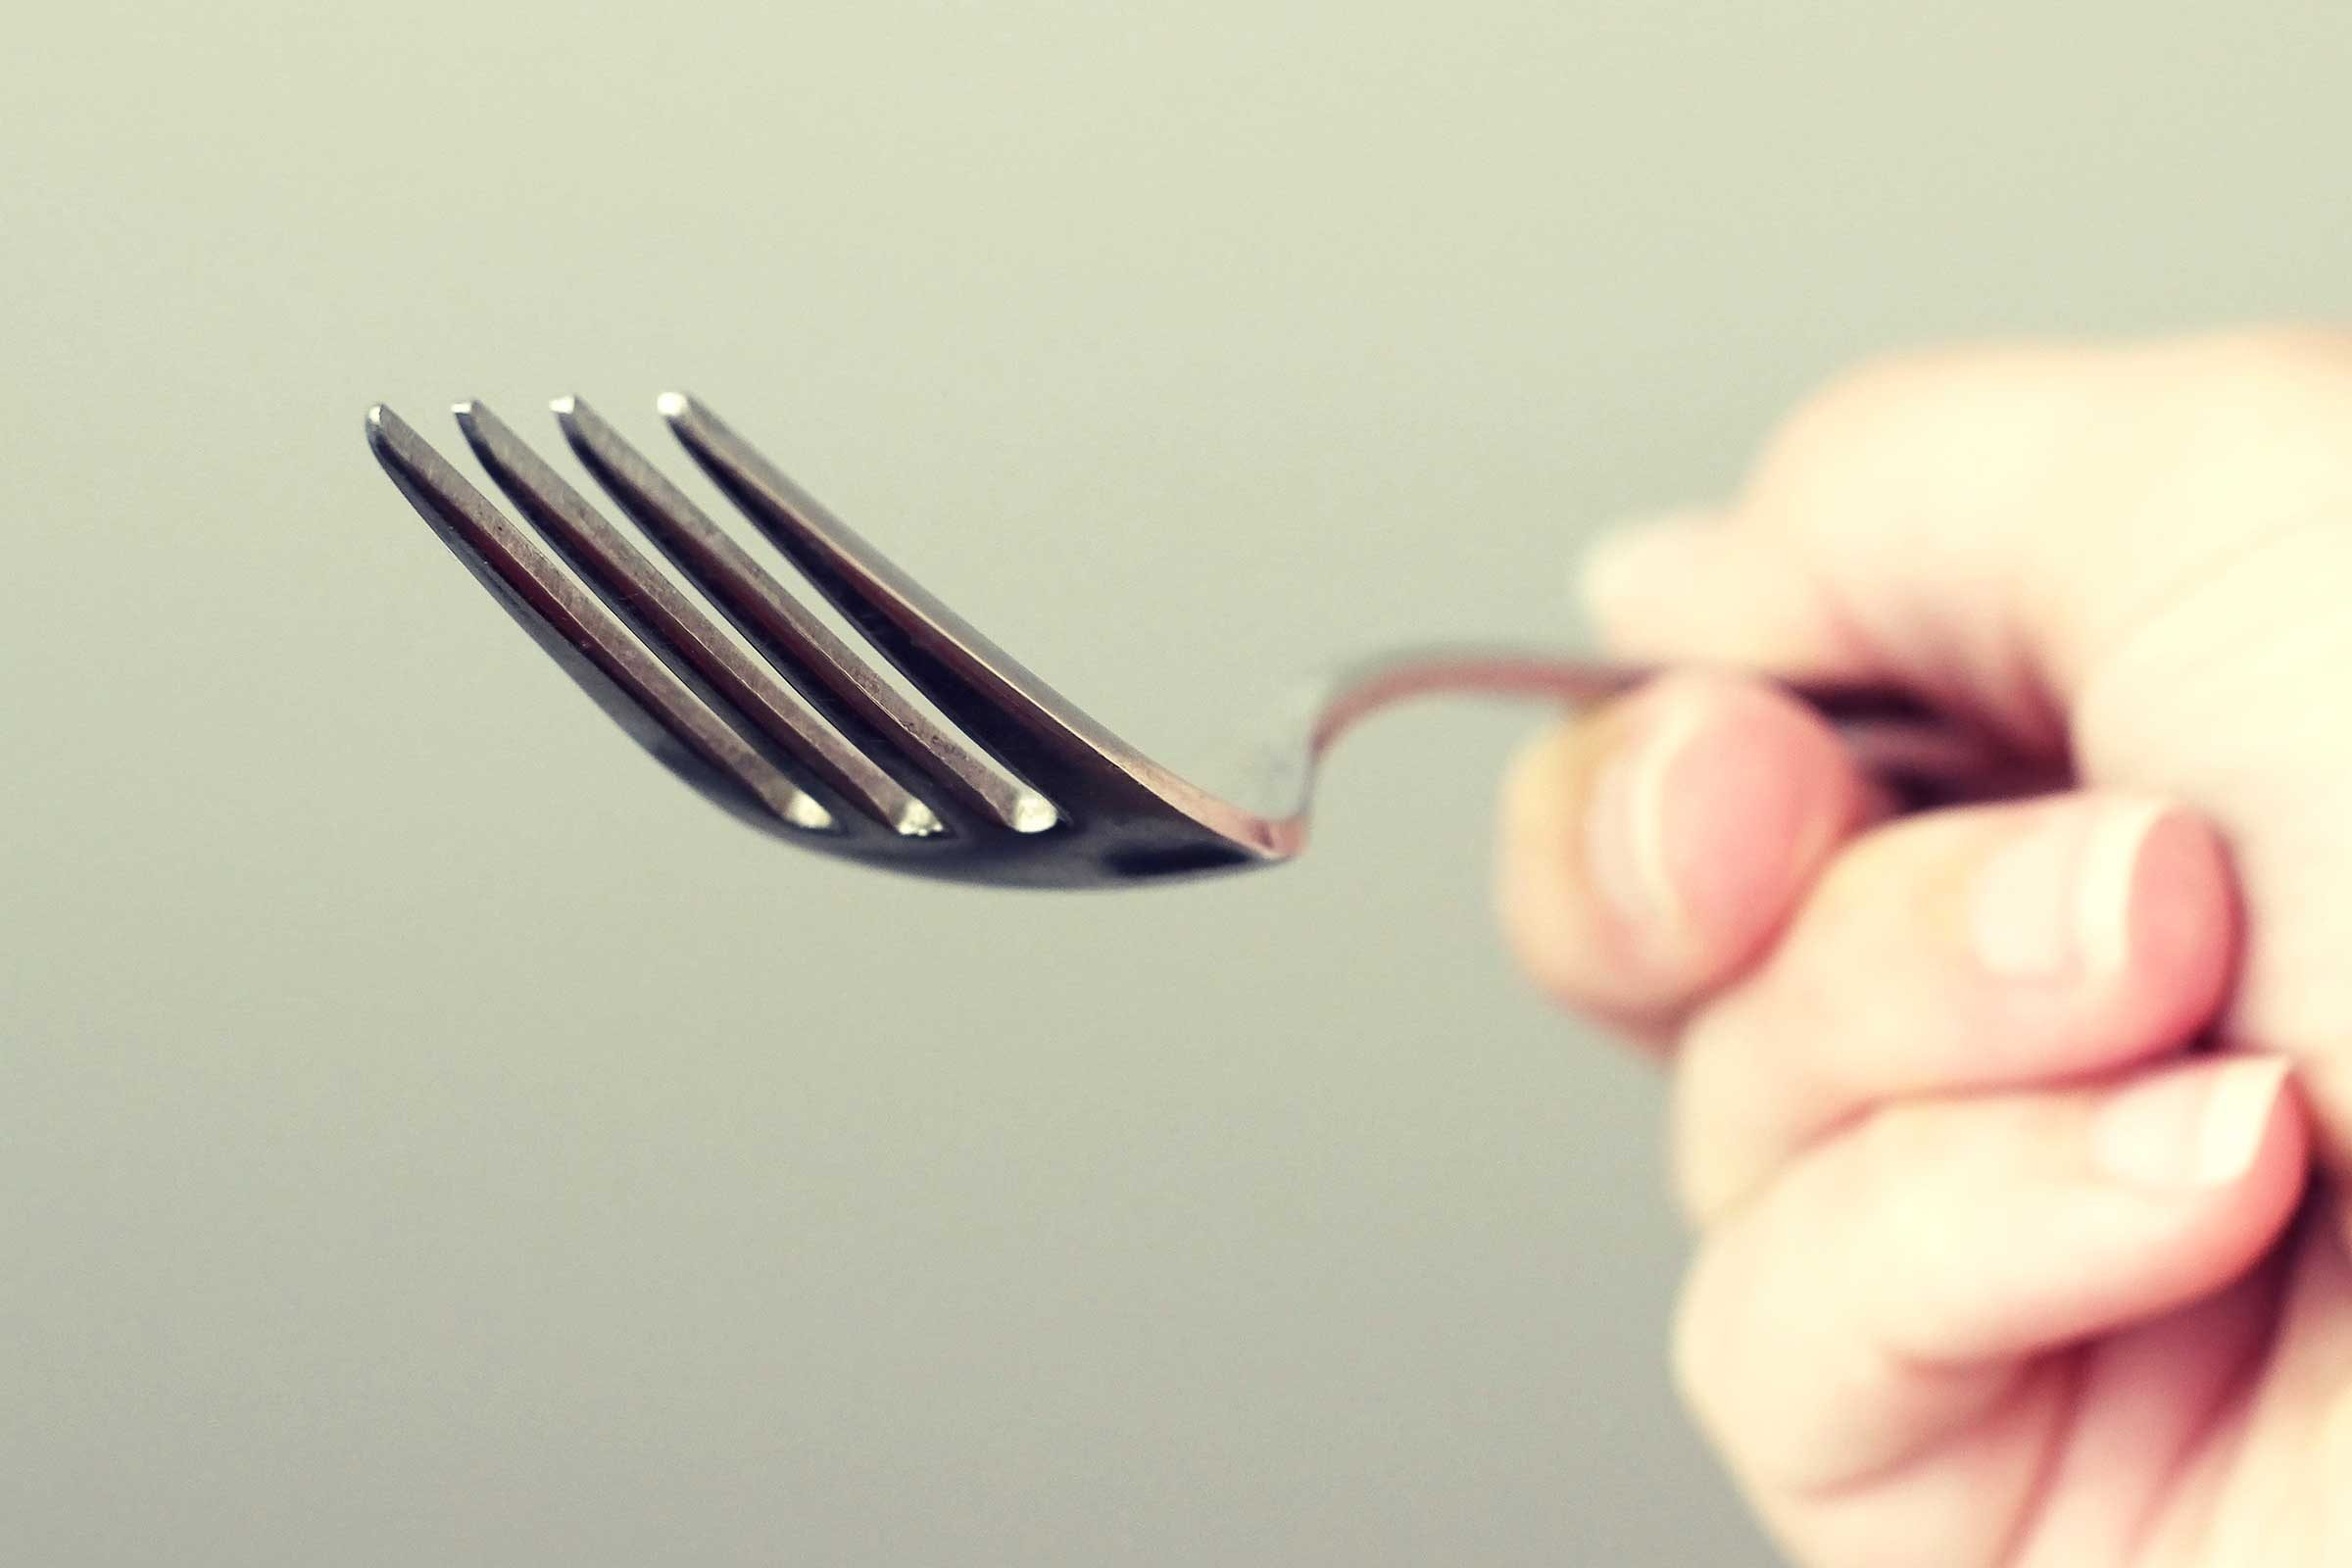 You can't find your fork—and then realize you're holding it